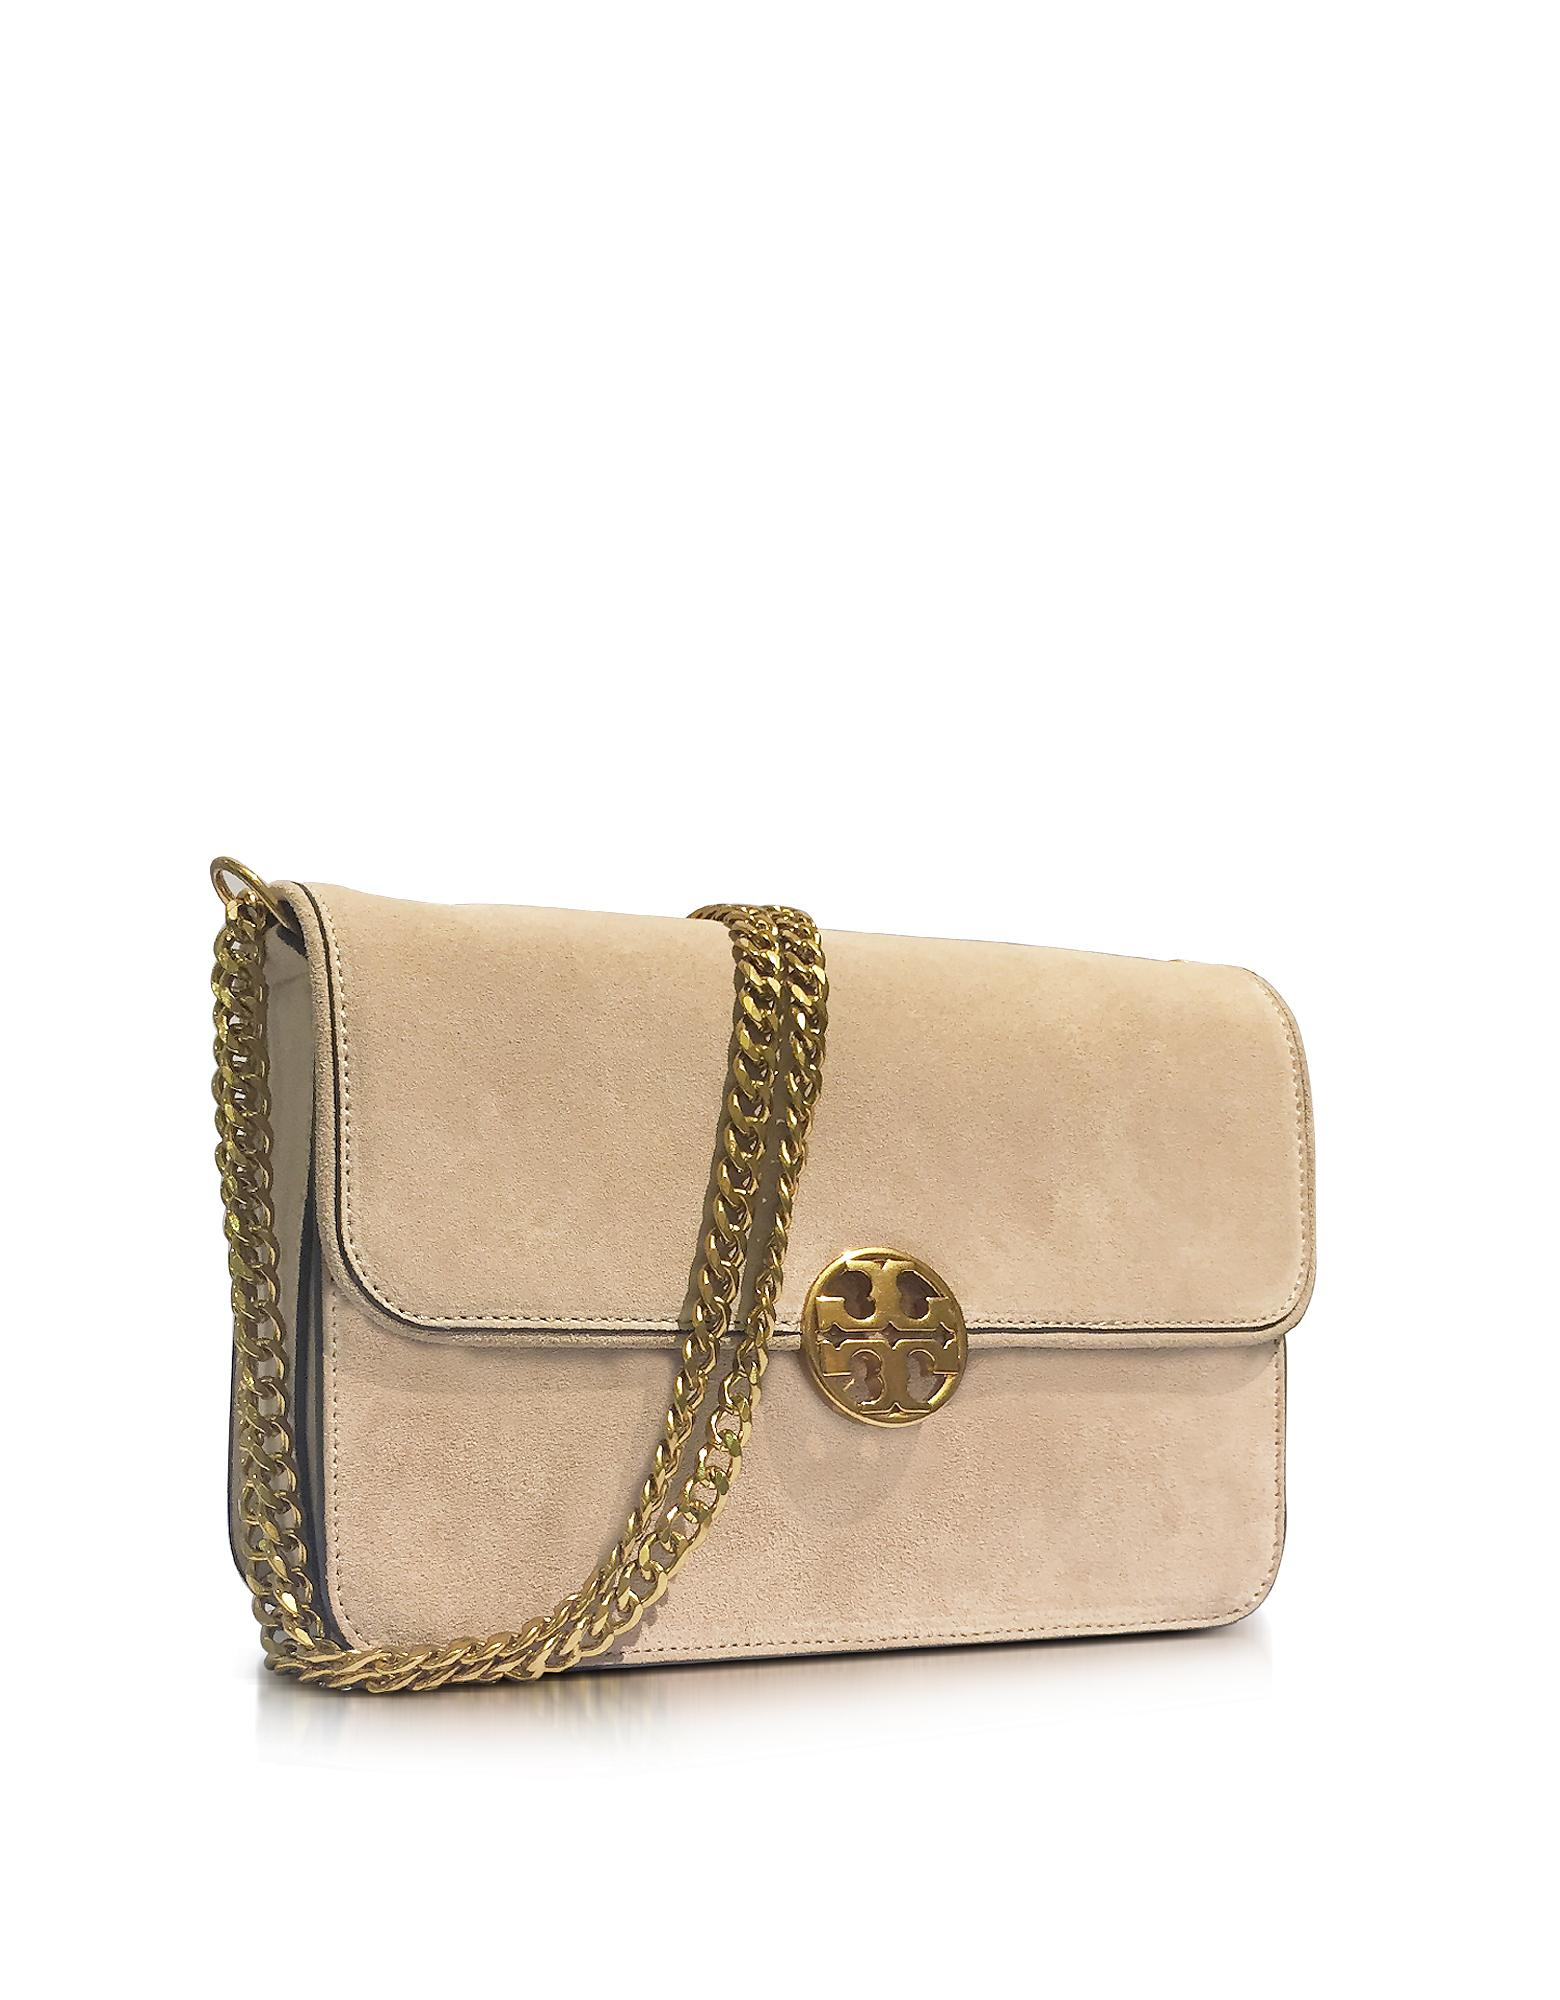 95f0cb961cc Lyst - Tory Burch Chelsea Stucco Suede Shoulder Bag in Natural